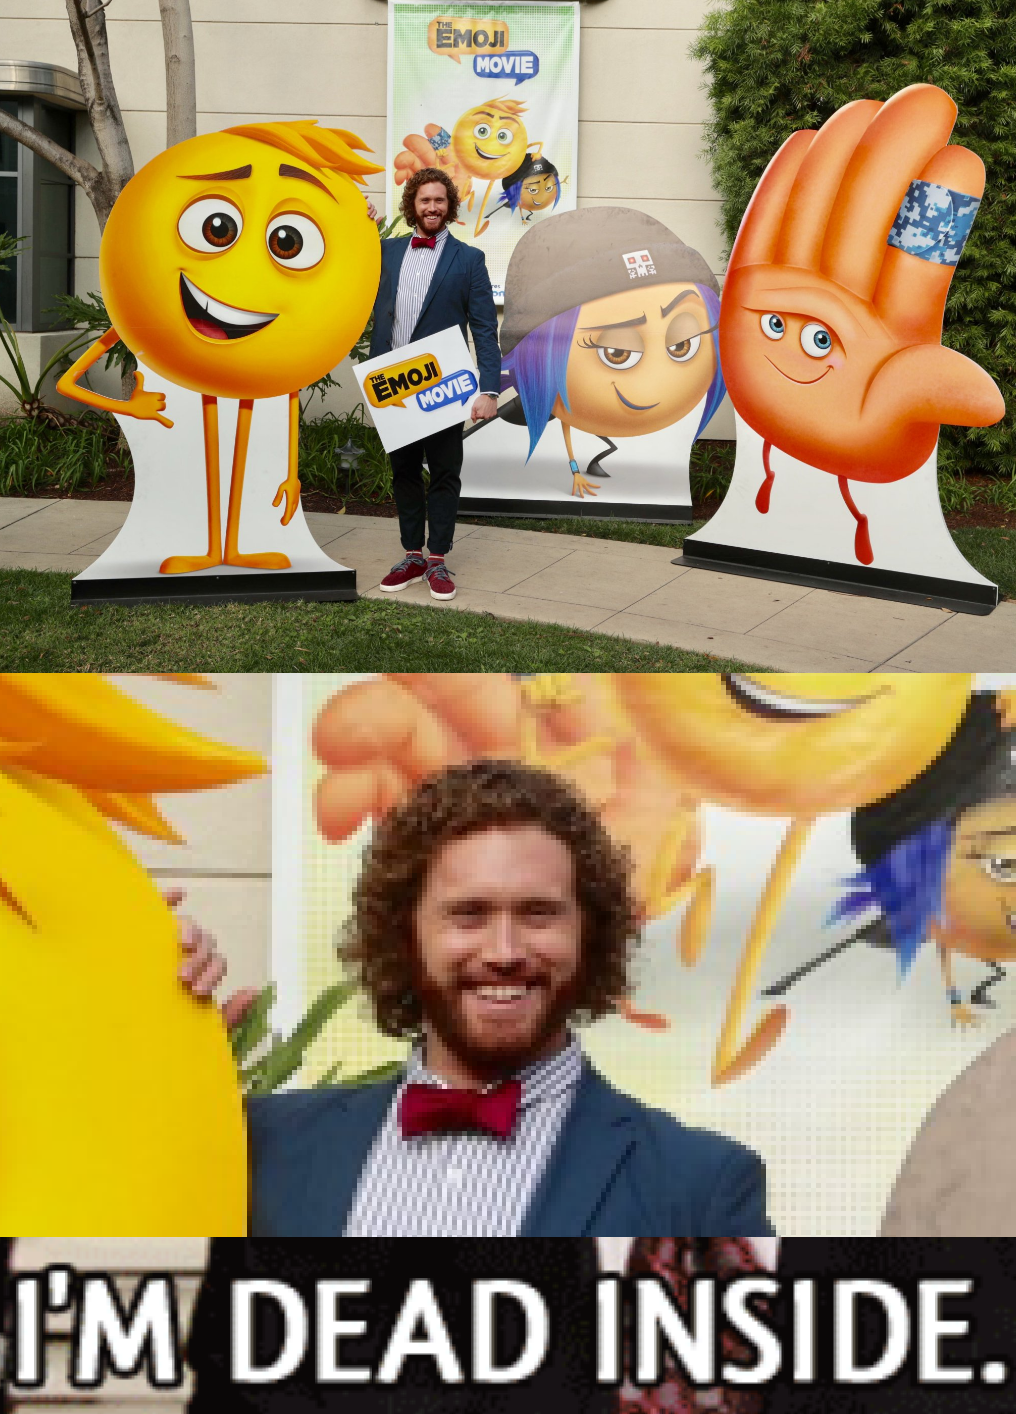 005 dead the emoji movie know your meme,Meme The Movie